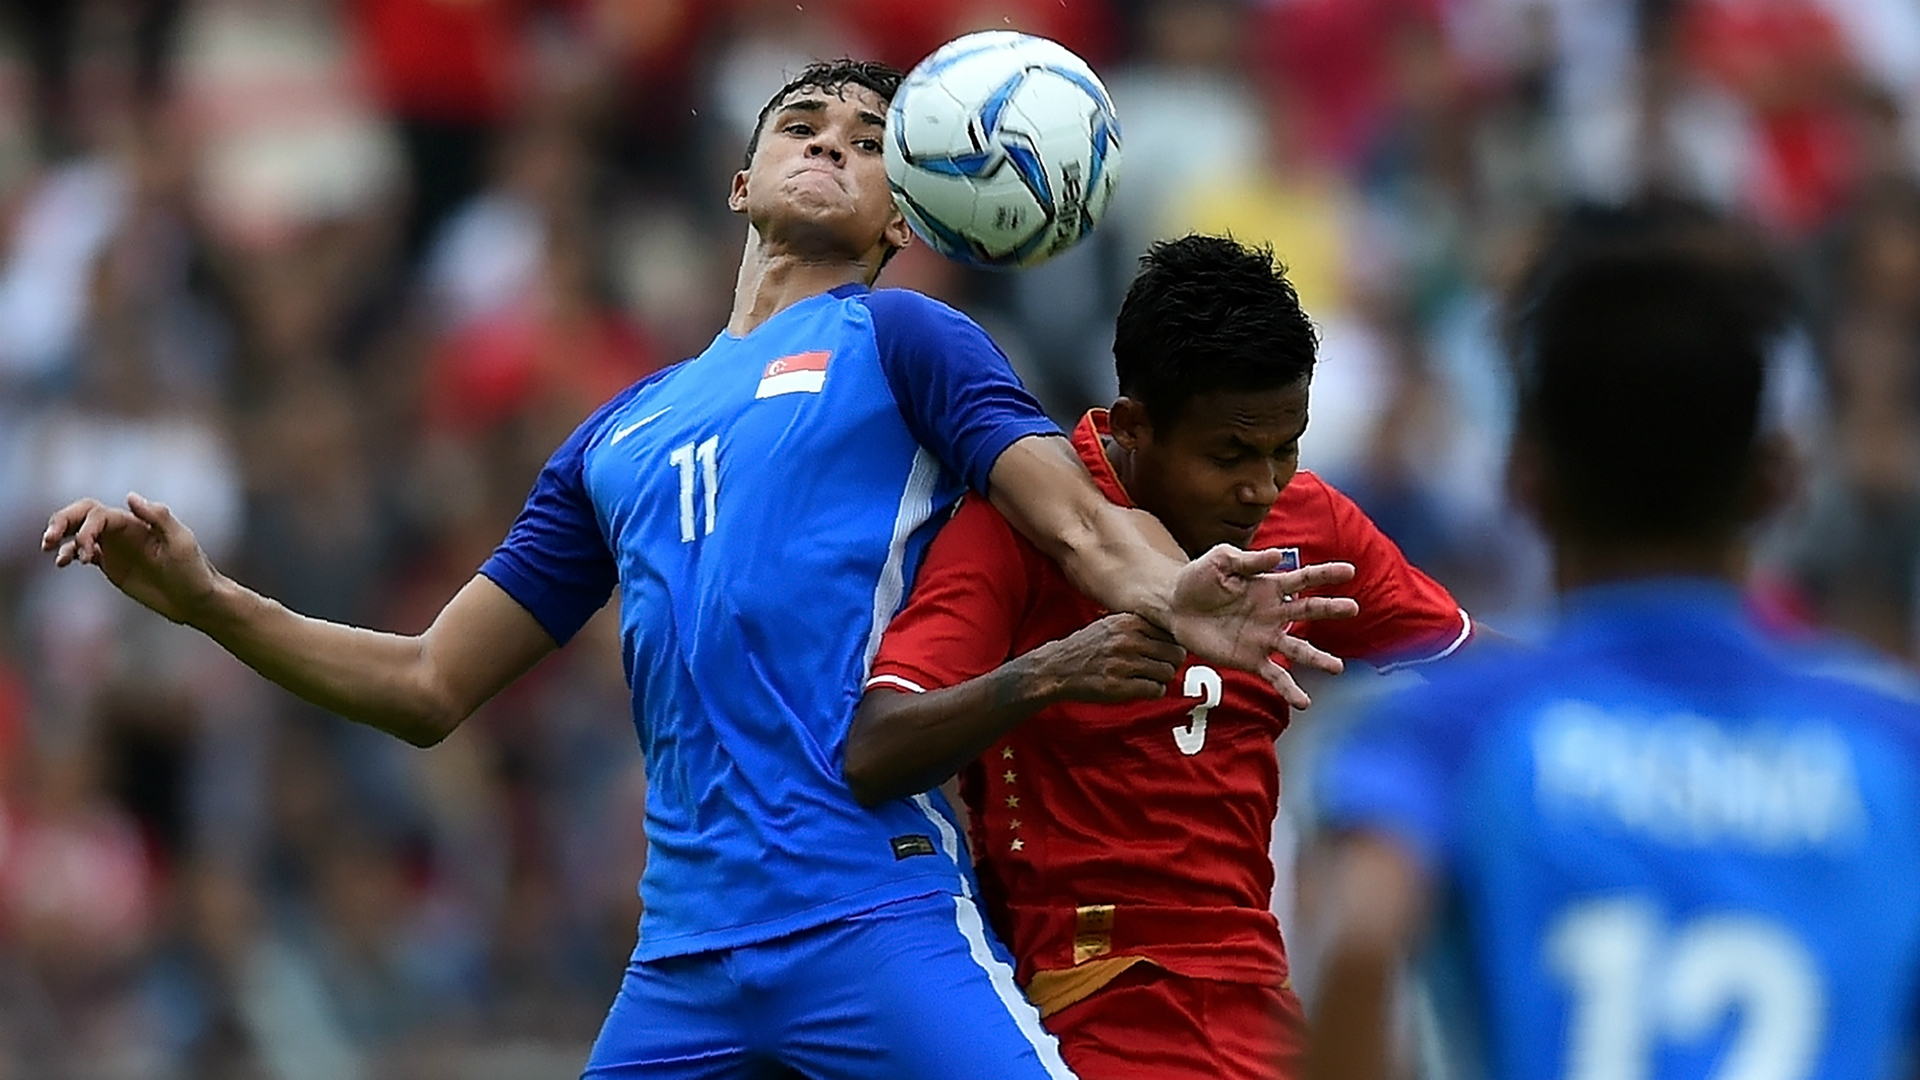 Ikhsan Fandi, Singapore, SEA Games